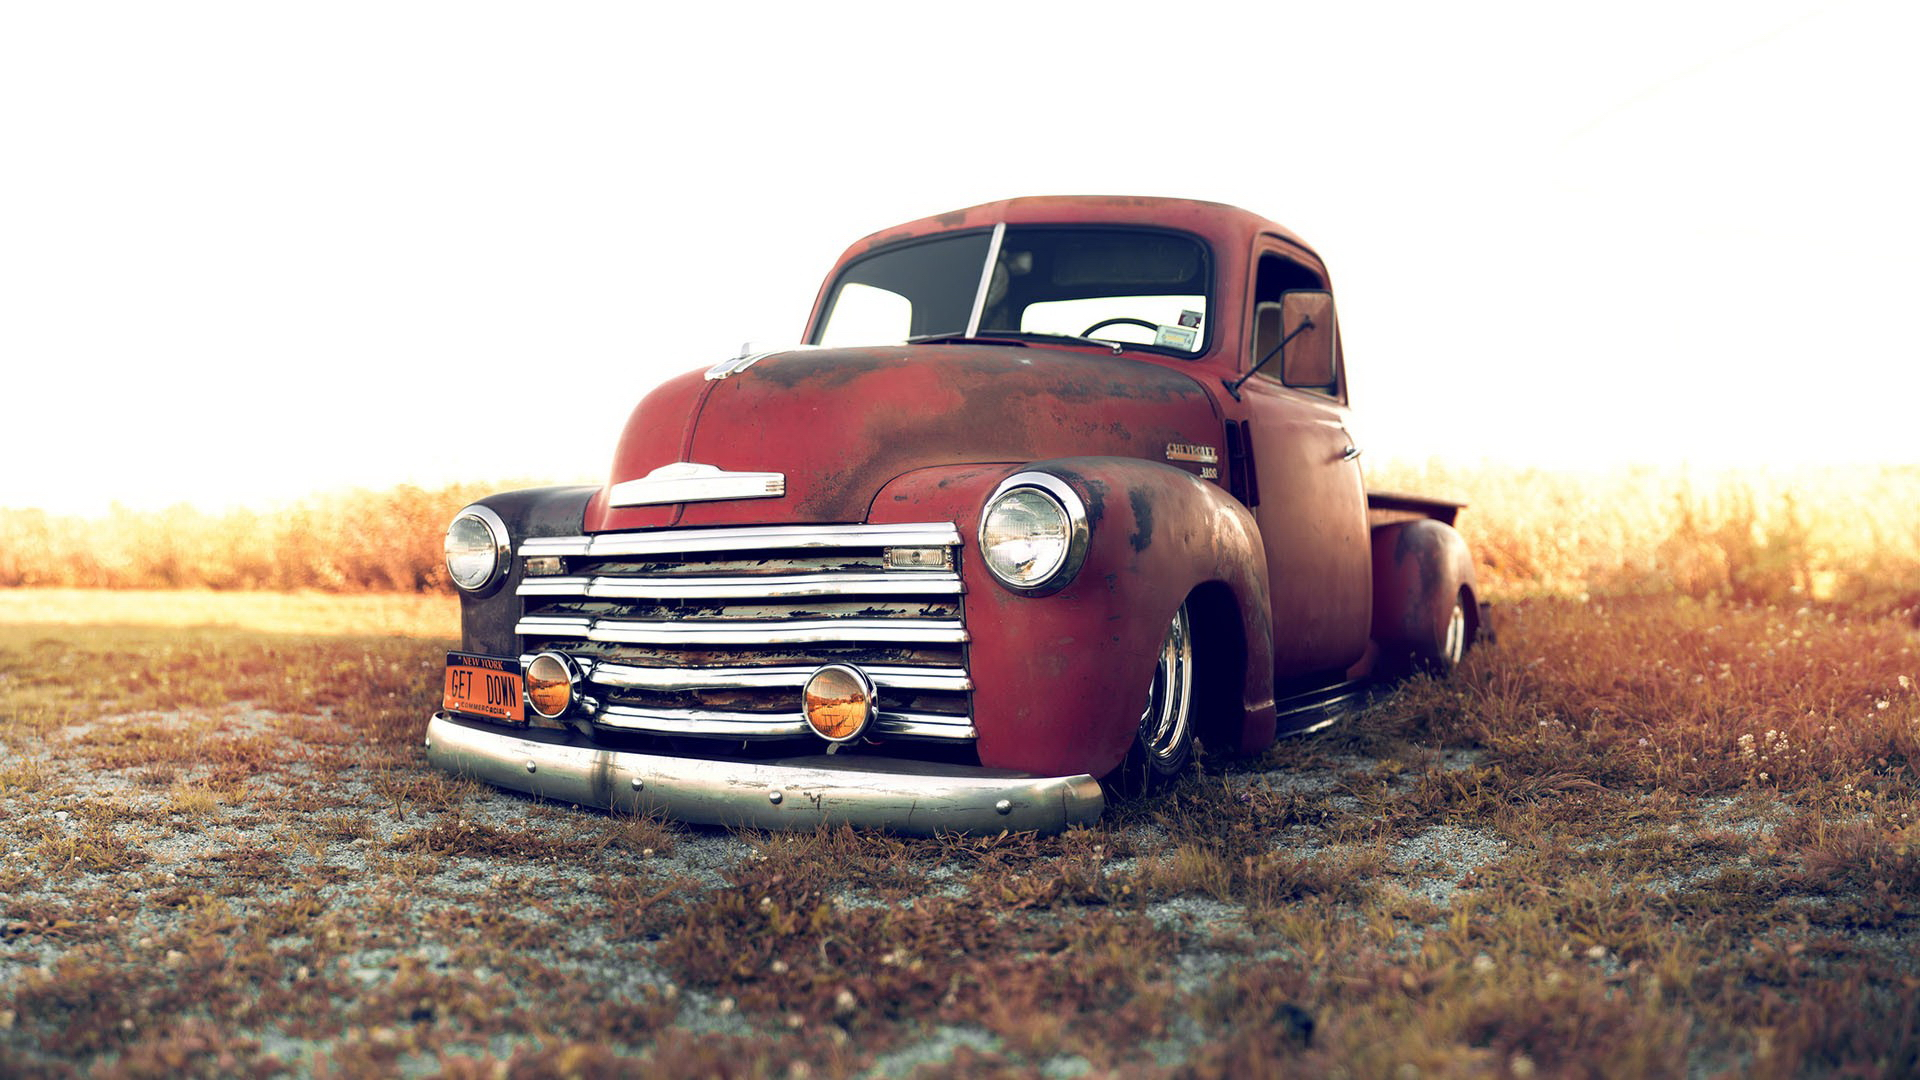 1949 Chevy Truck HD Wallpaper | Background Image | 1920x1080 | ID:362272 - Wallpaper Abyss